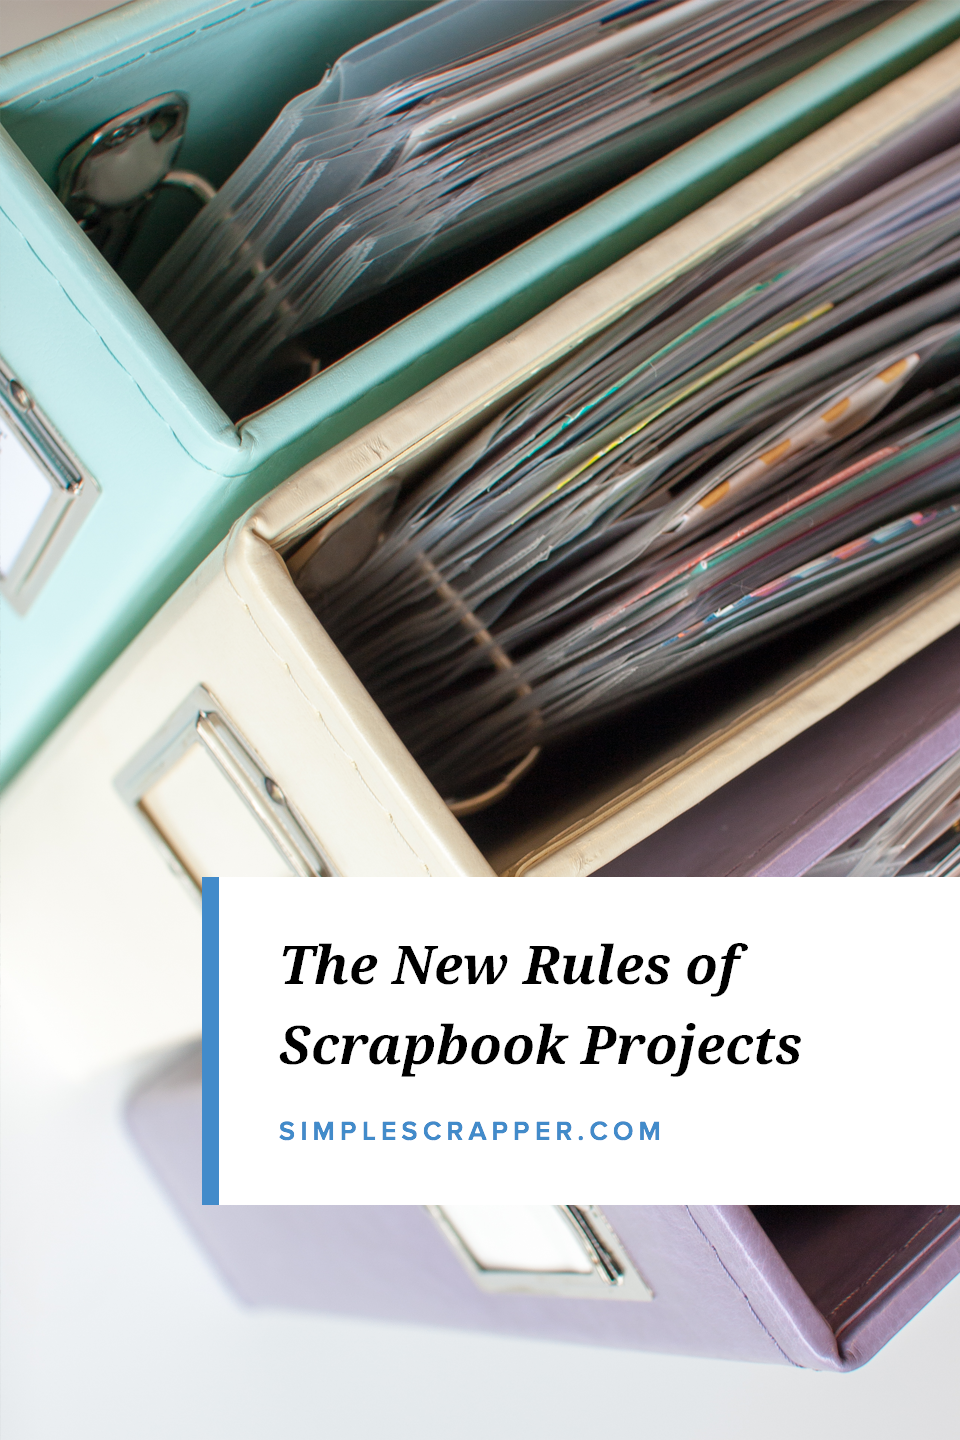 Thinking about new projects? Scrapbooking is easier and more fun when you follow The New Rules.